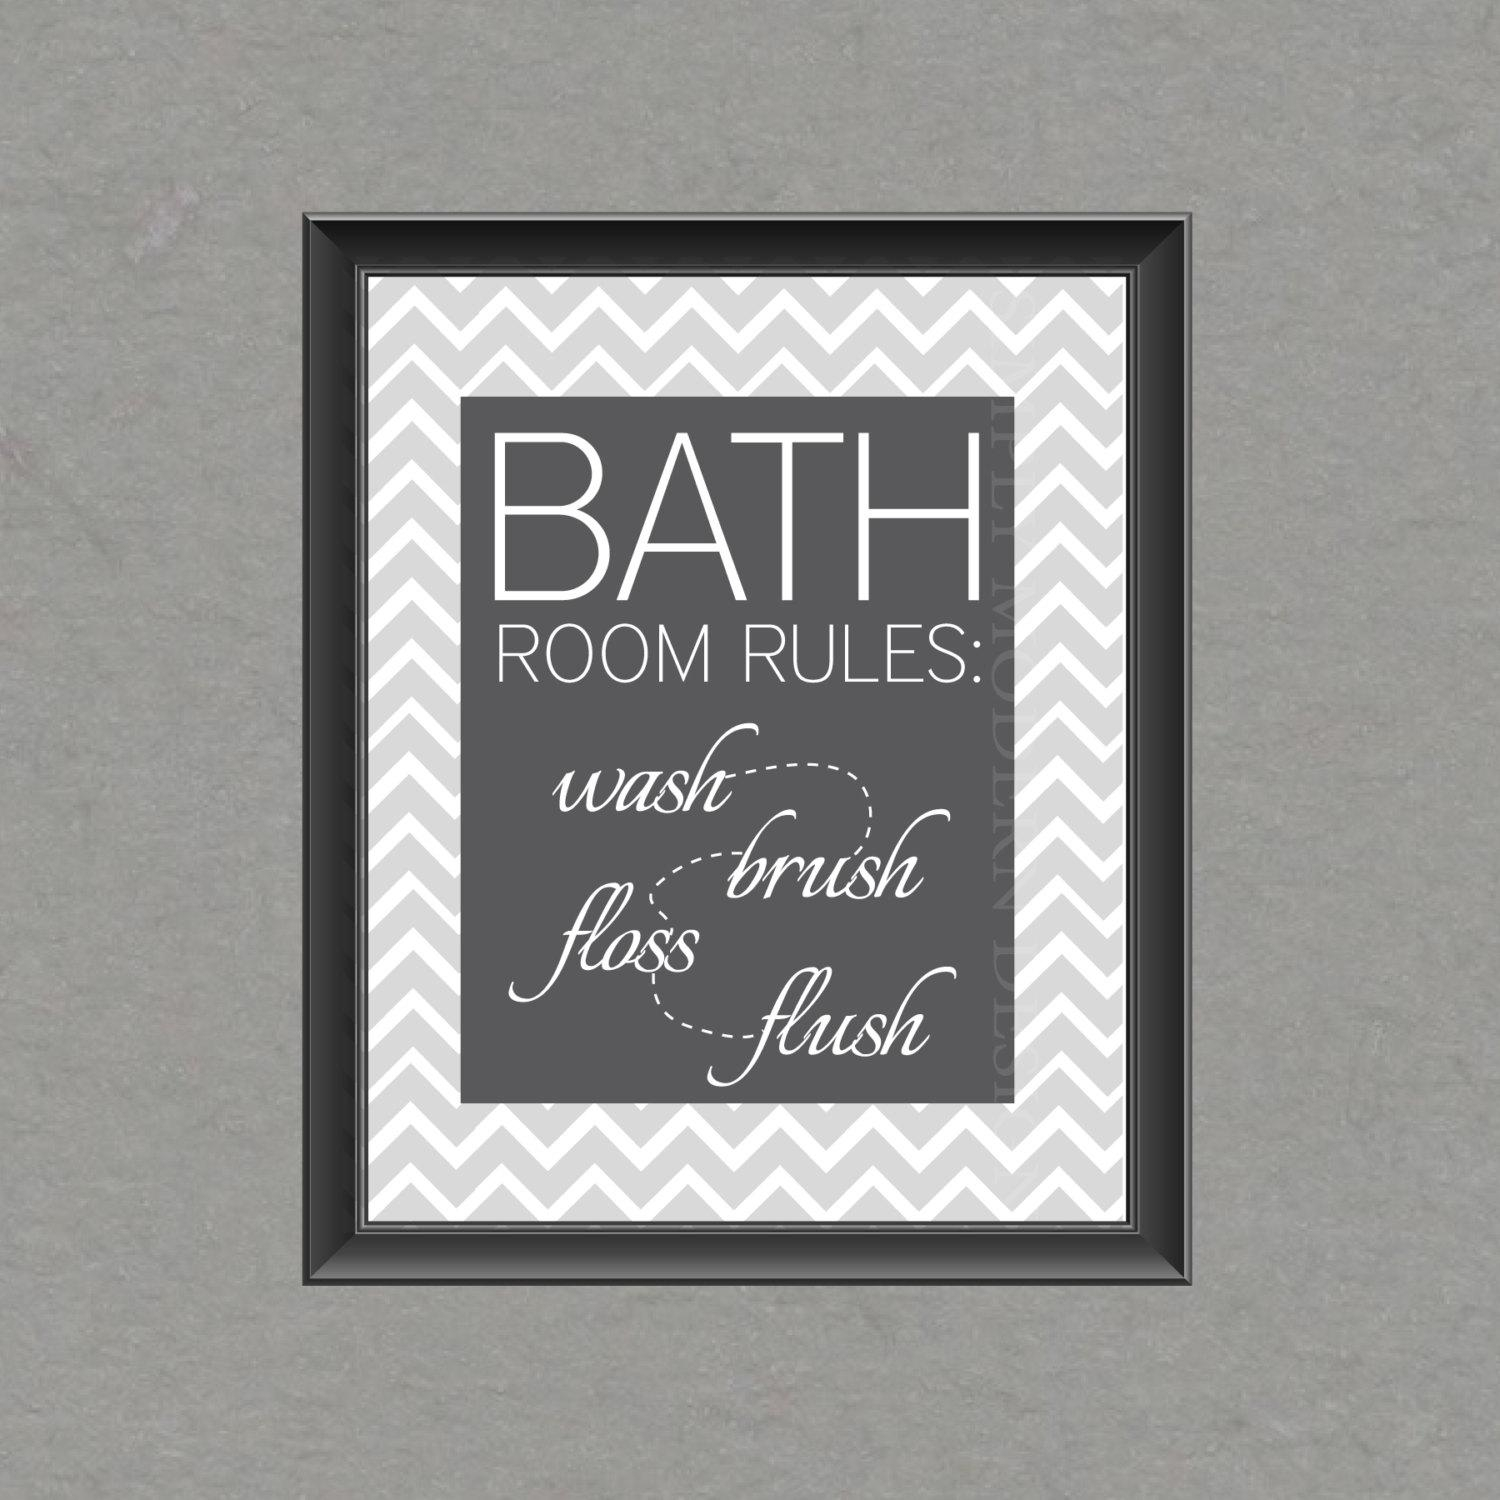 Stimulate Creativity With Bathroom Wall Art Bathroom Ideas ~ Koonlo Throughout Purple Bathroom Wall Art (View 14 of 20)